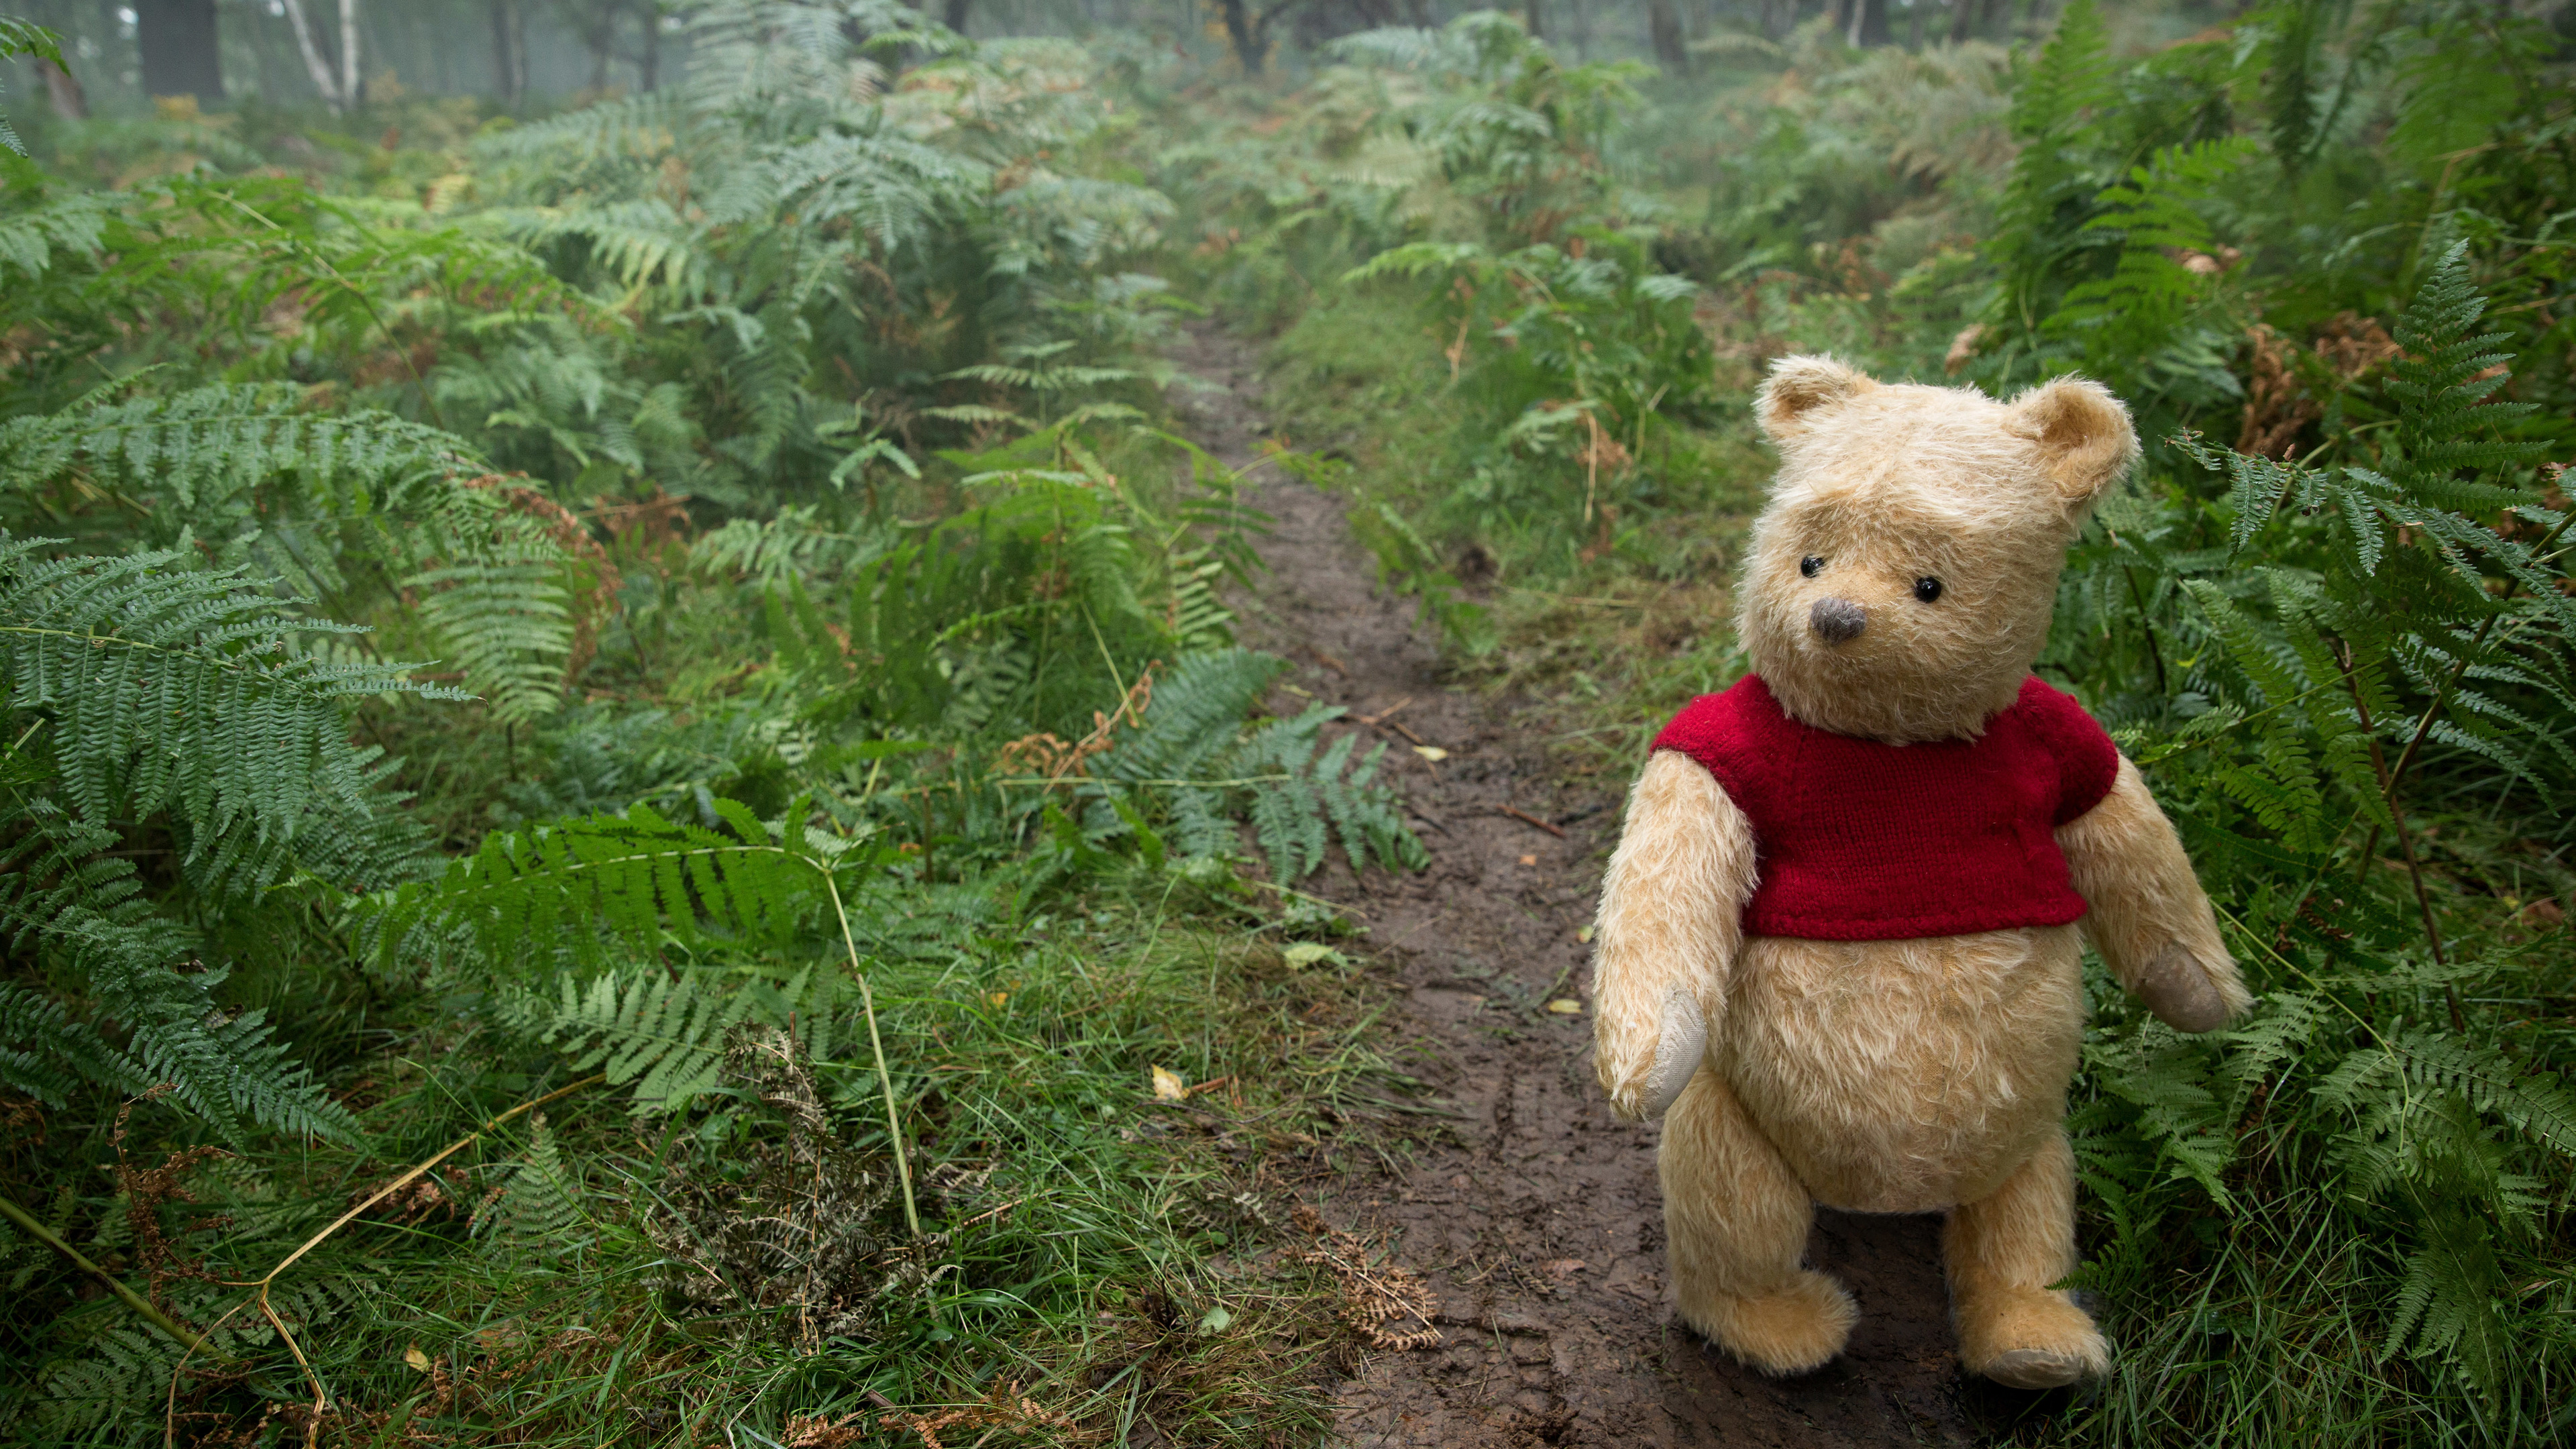 Wallpaper 4k Winnie The Pooh In Christopher Robin Movie 5k